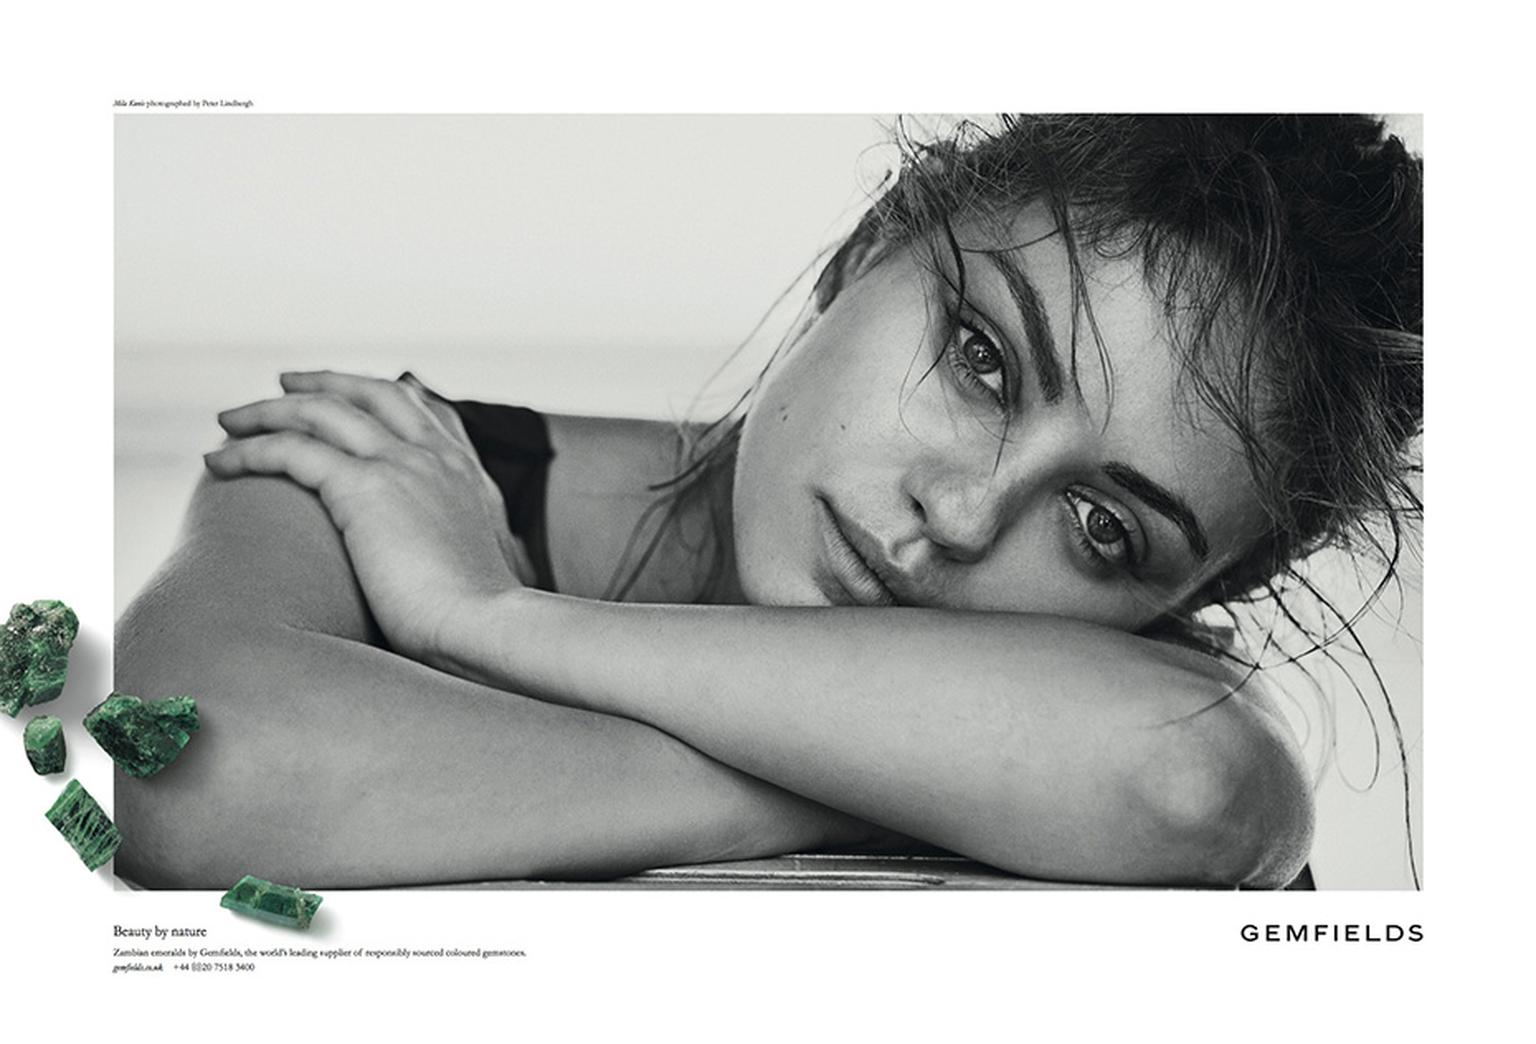 Gemfields' raw green emeralds have been superimposed onto the monochrome advertising visuals, emphasising their colour as well as Gemfields' role as a leading producer of coloured stones